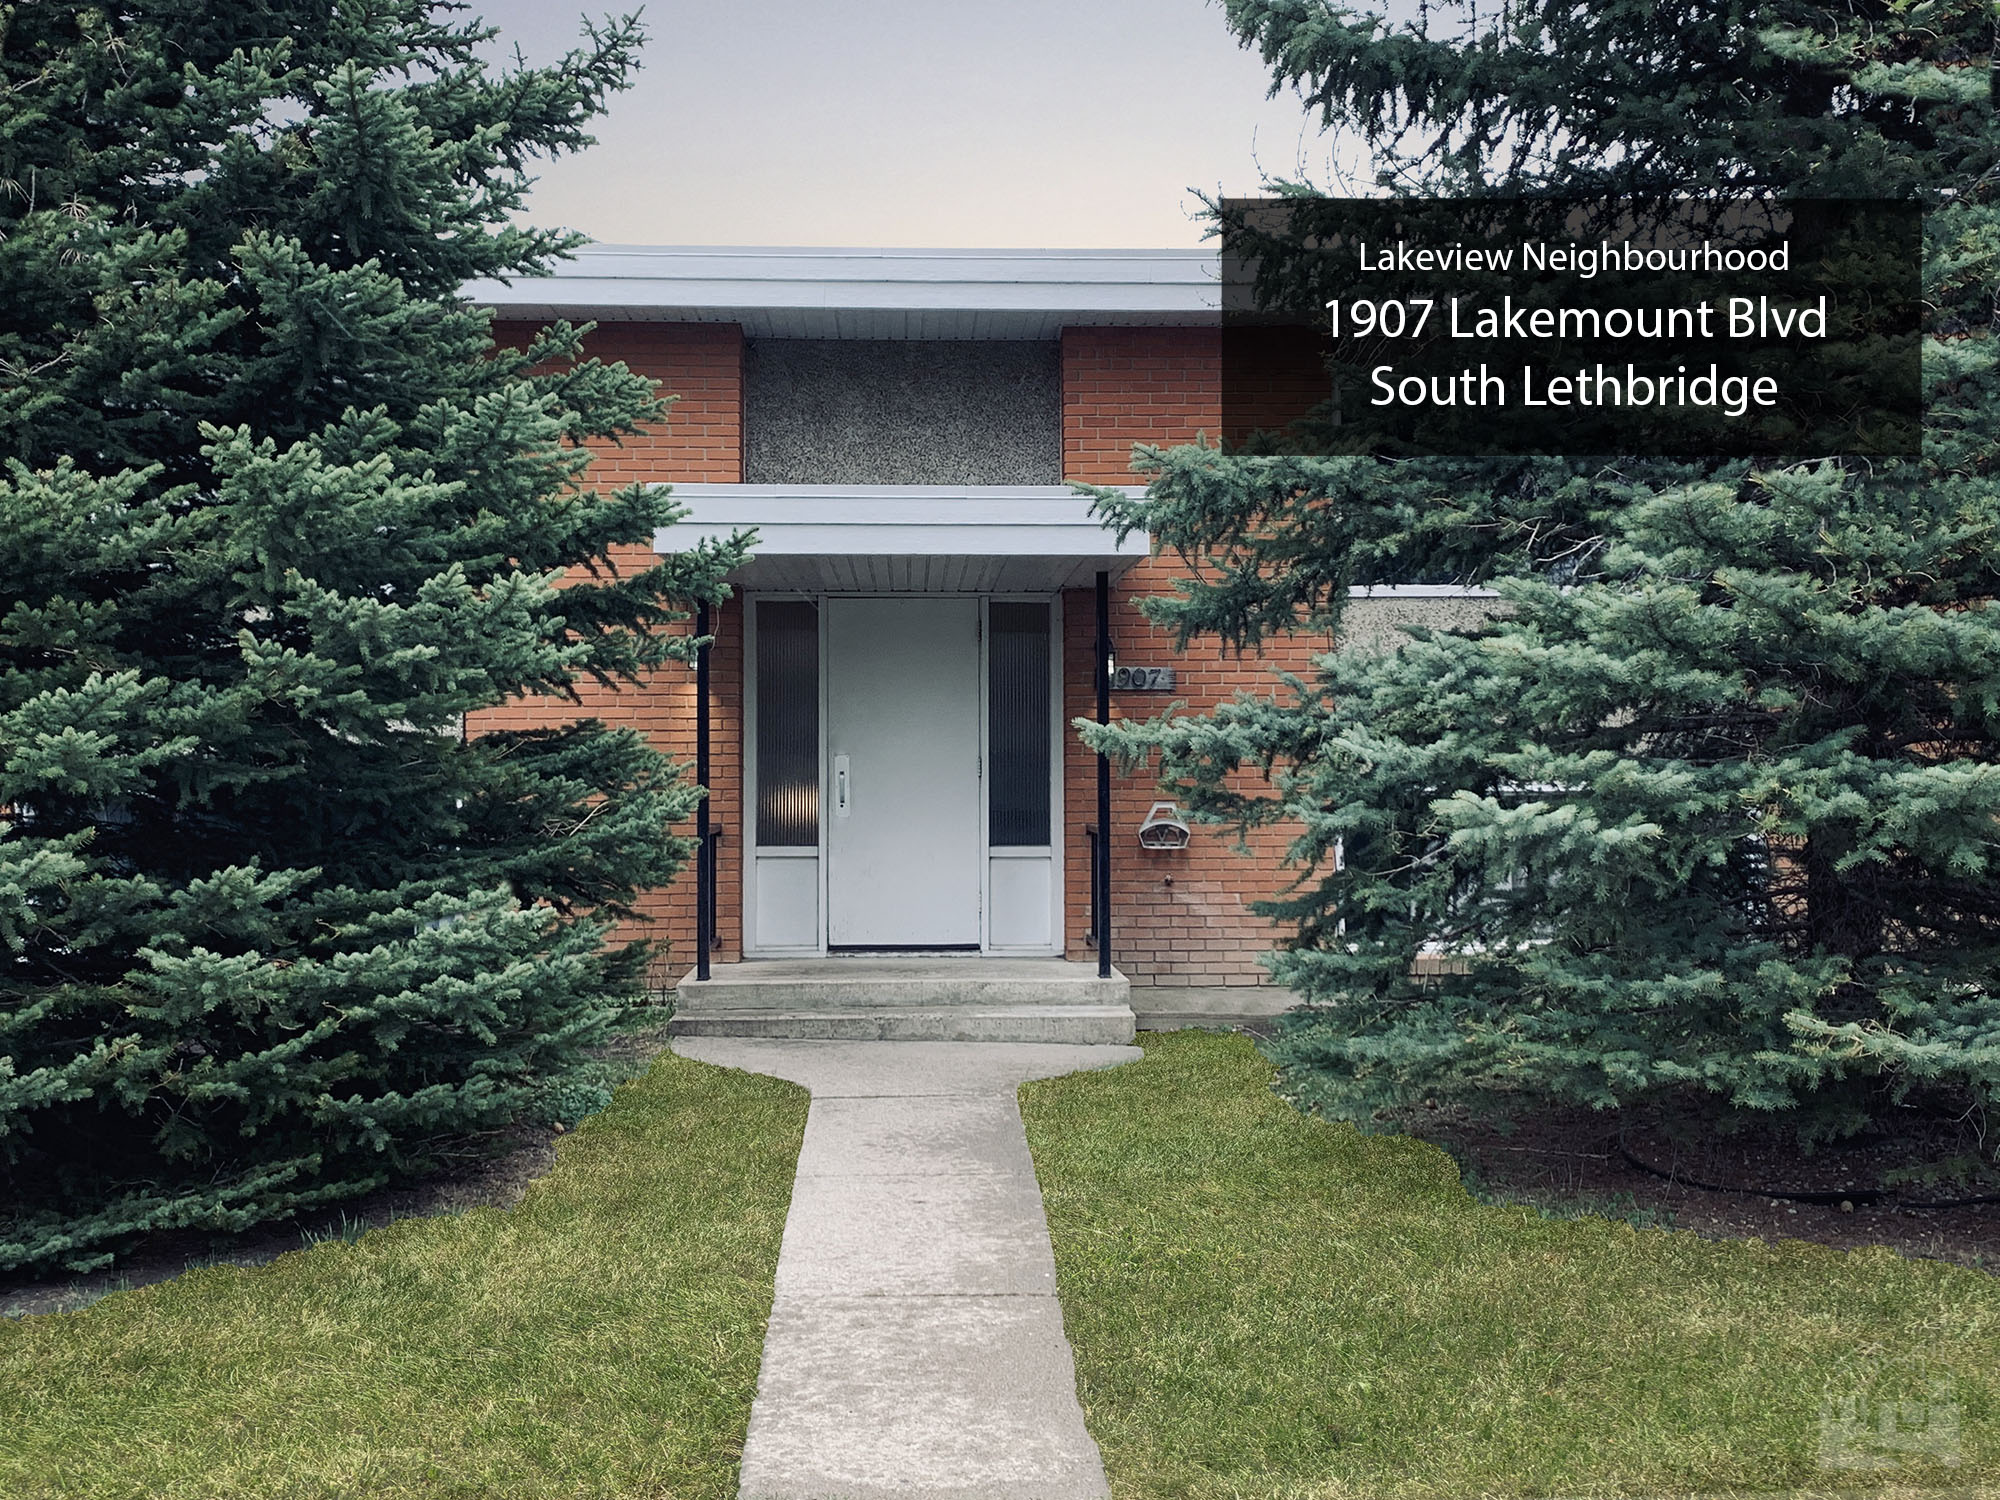 1907 Lakemount Boulevard South Lethbridge (Unit 2) Key Image